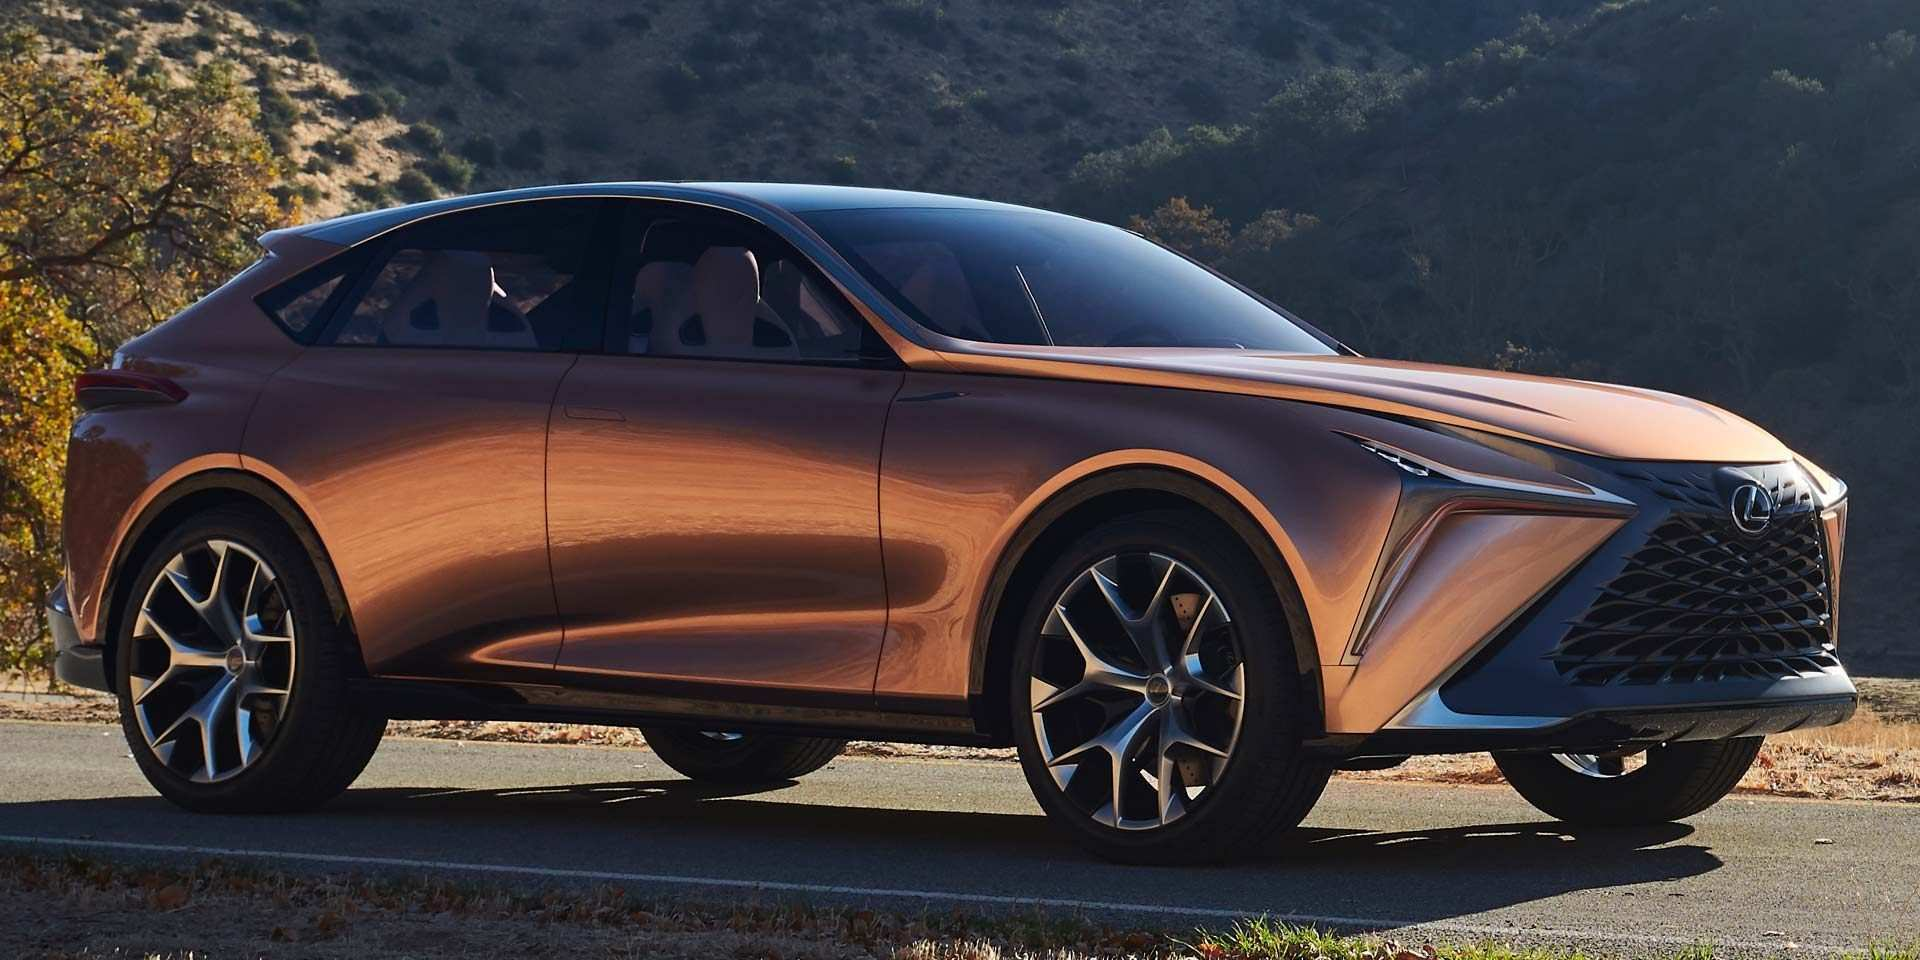 50 Best Review Lexus Models For 2019 Exterior and Interior with Lexus Models For 2019